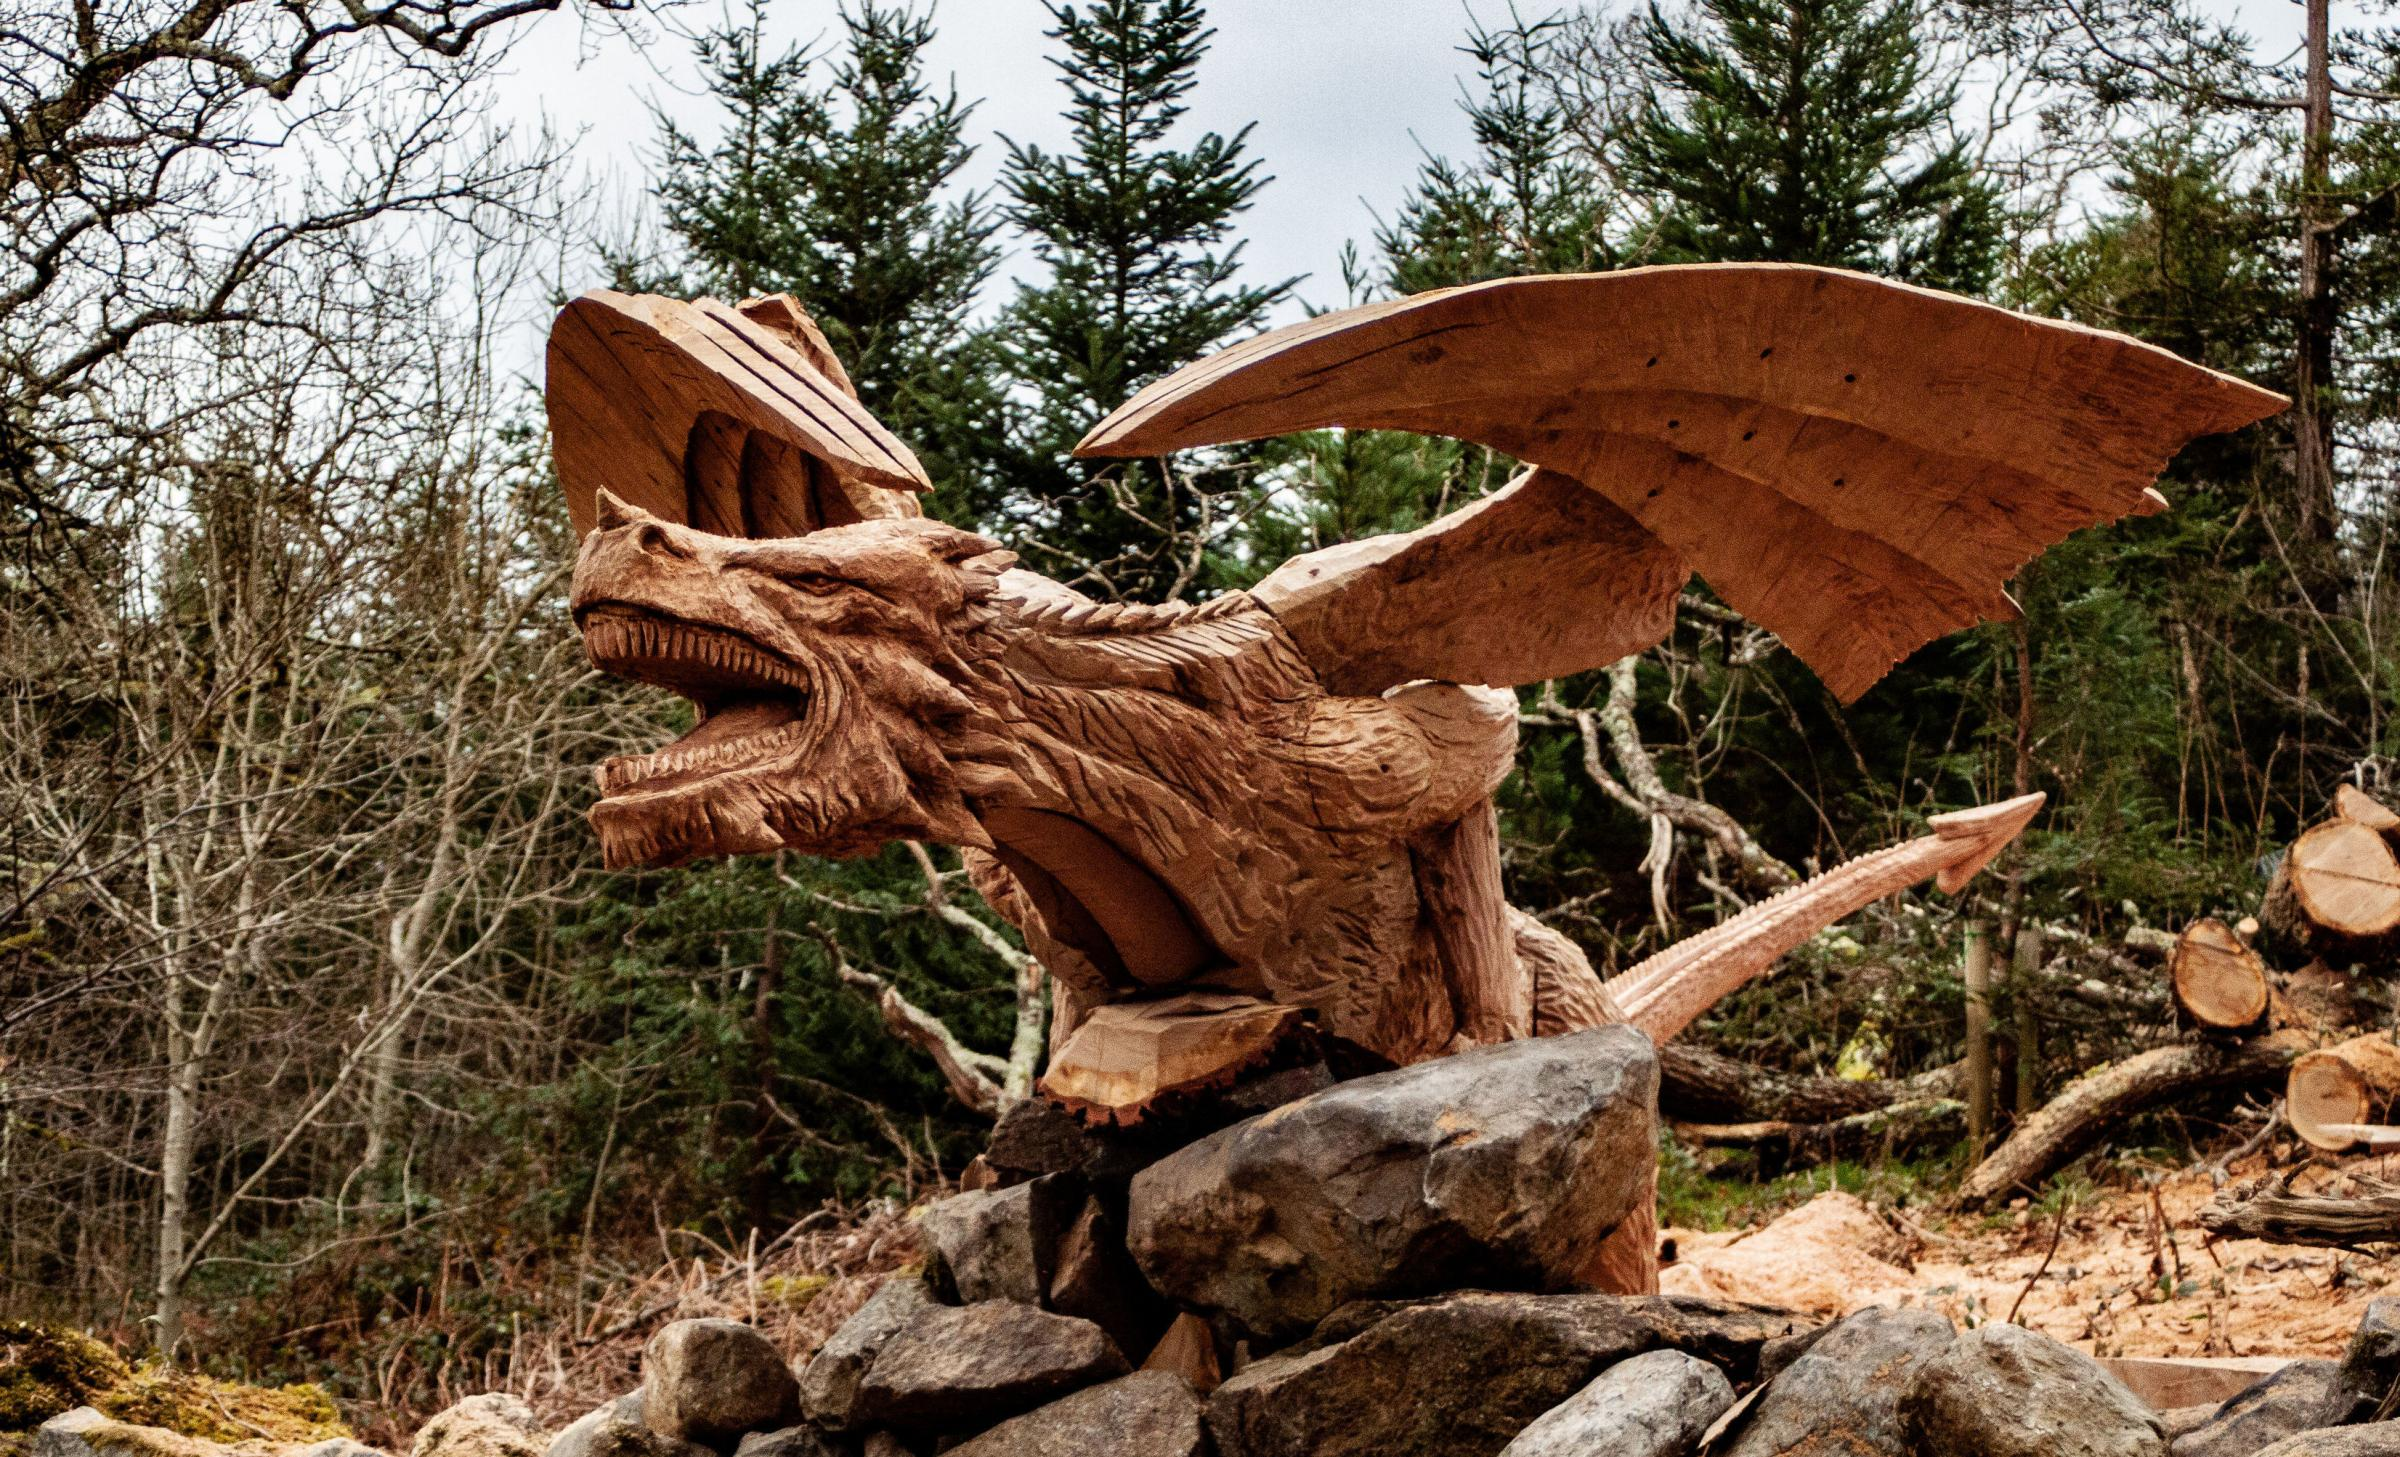 Y Draig Dderw has been causing quite a stir among motorists. Photo credit: Simon O'Rourke Tree Carving/PA.